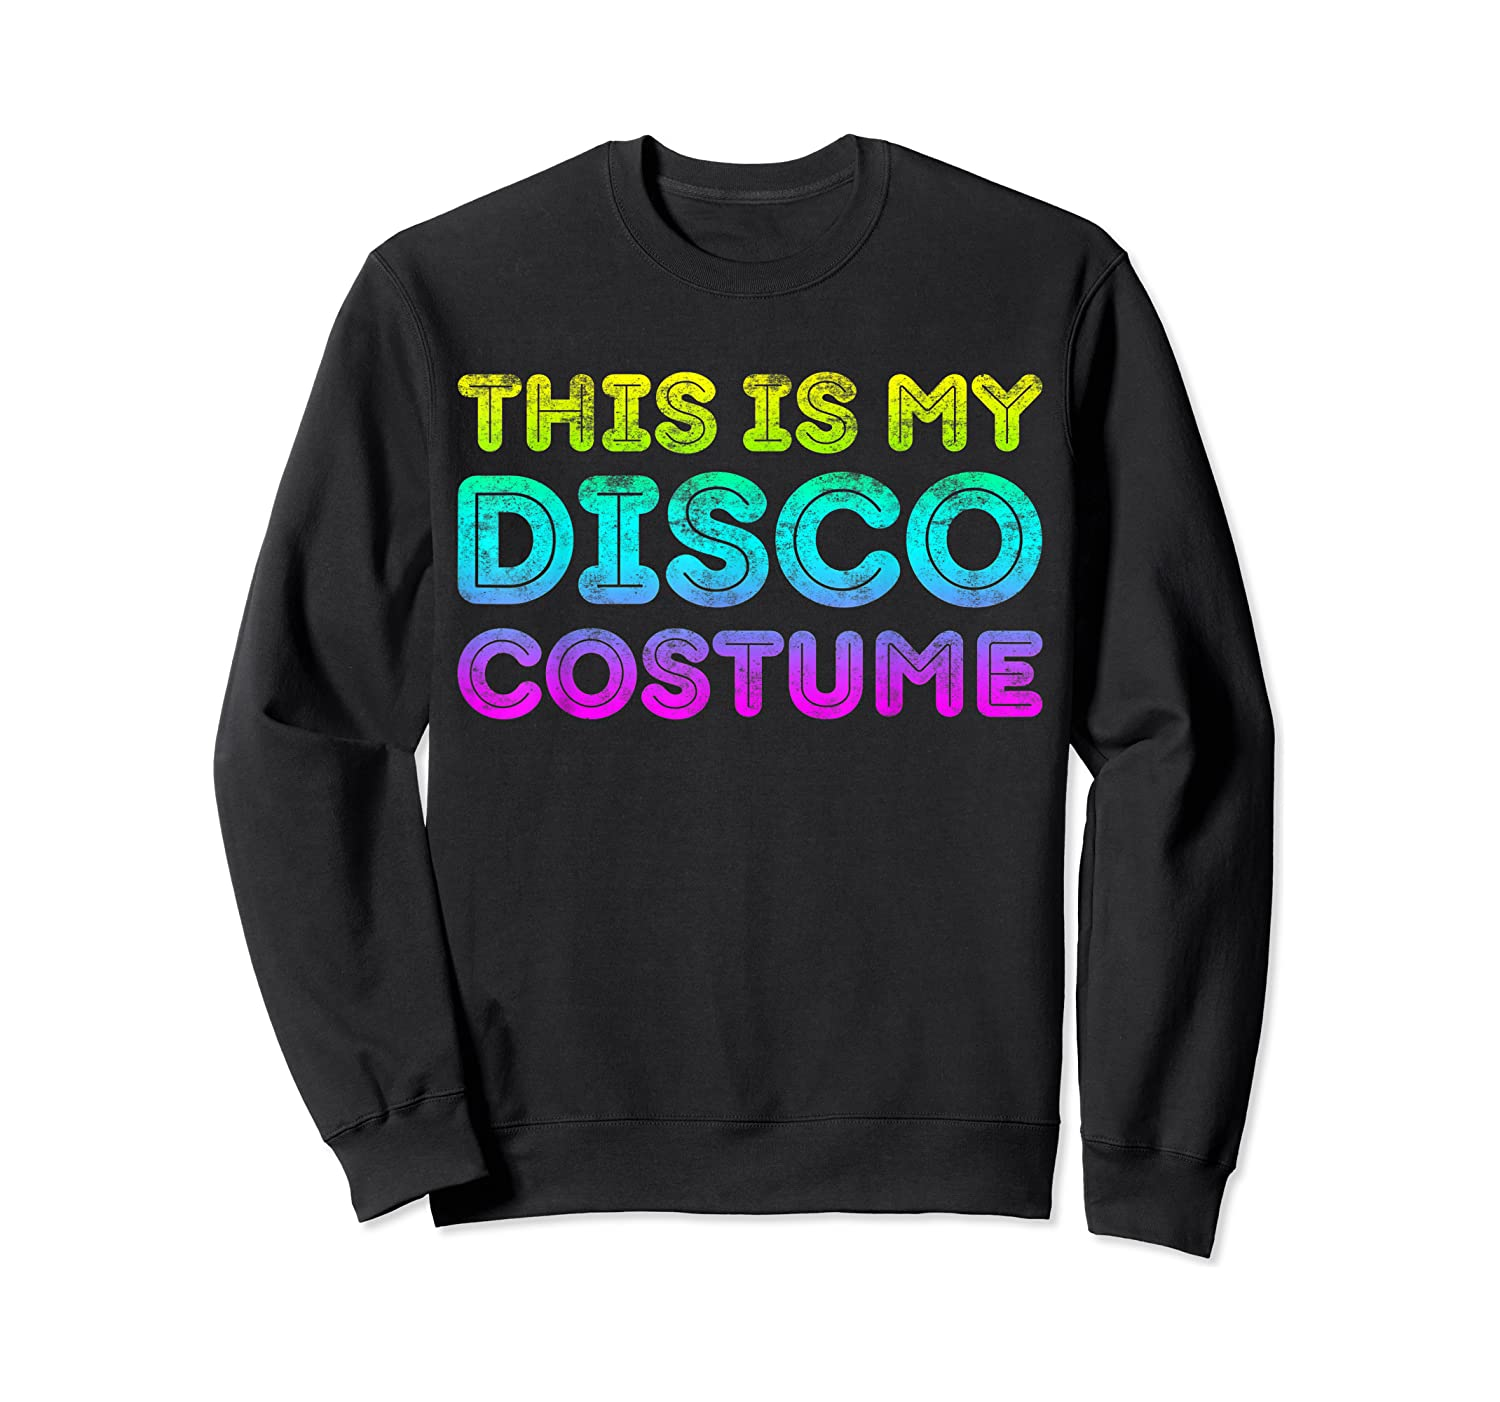 This Is My Disco Costume T-shirt Disco Party Shirt T-shirt Crewneck Sweater